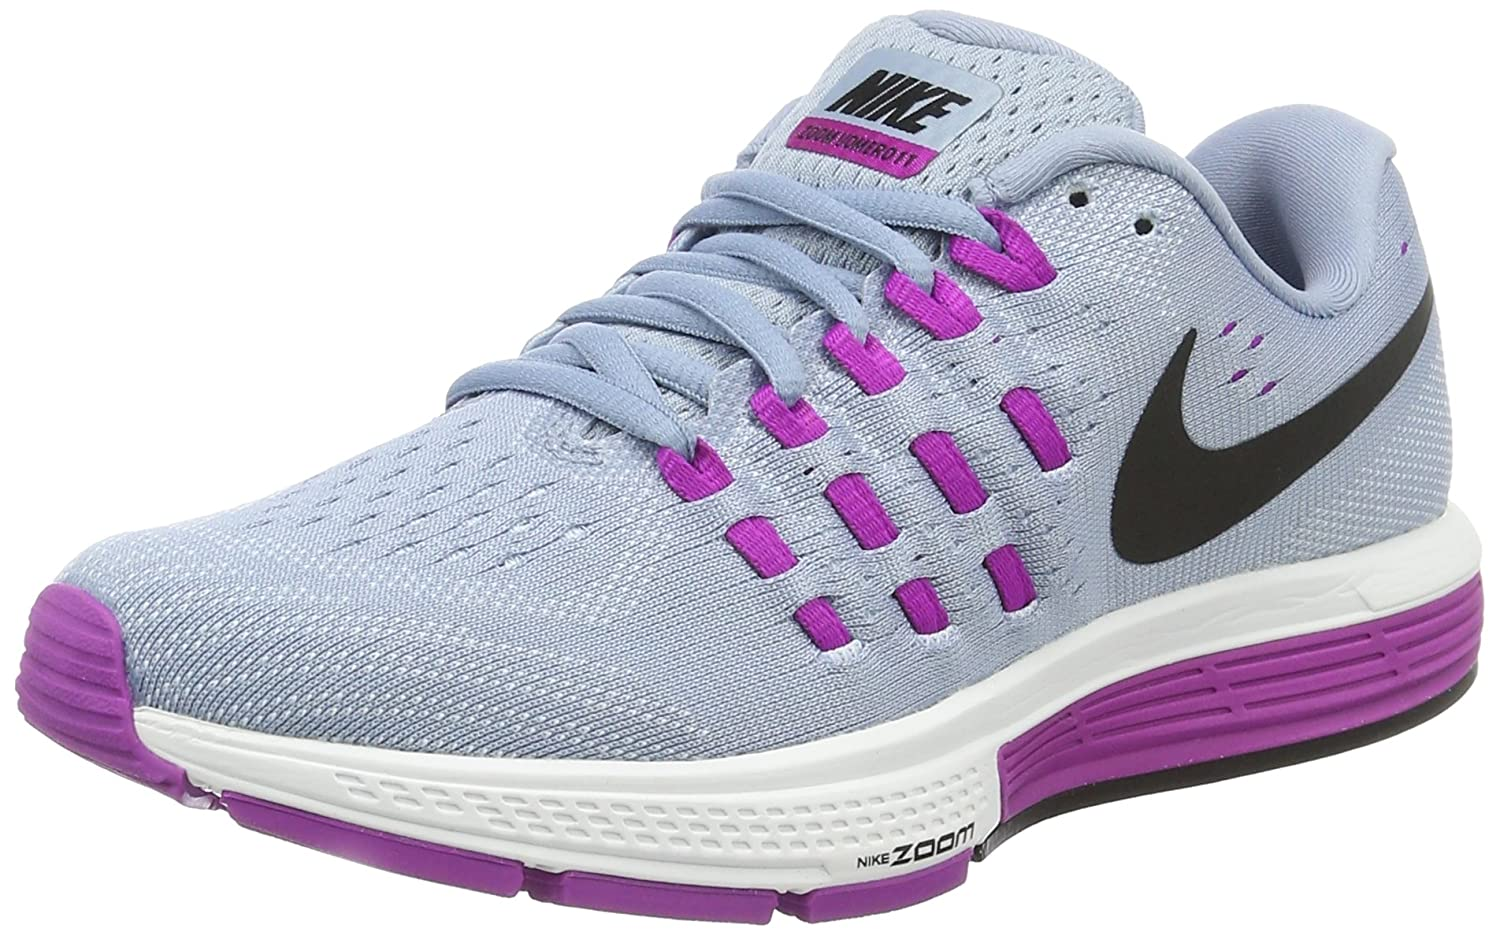 NIKE Women's Air Zoom Vomero 11 Running Shoe B015GIHUEO 10.5 B(M) US|Blue Grey/Black-hyper Violet-blue Tint